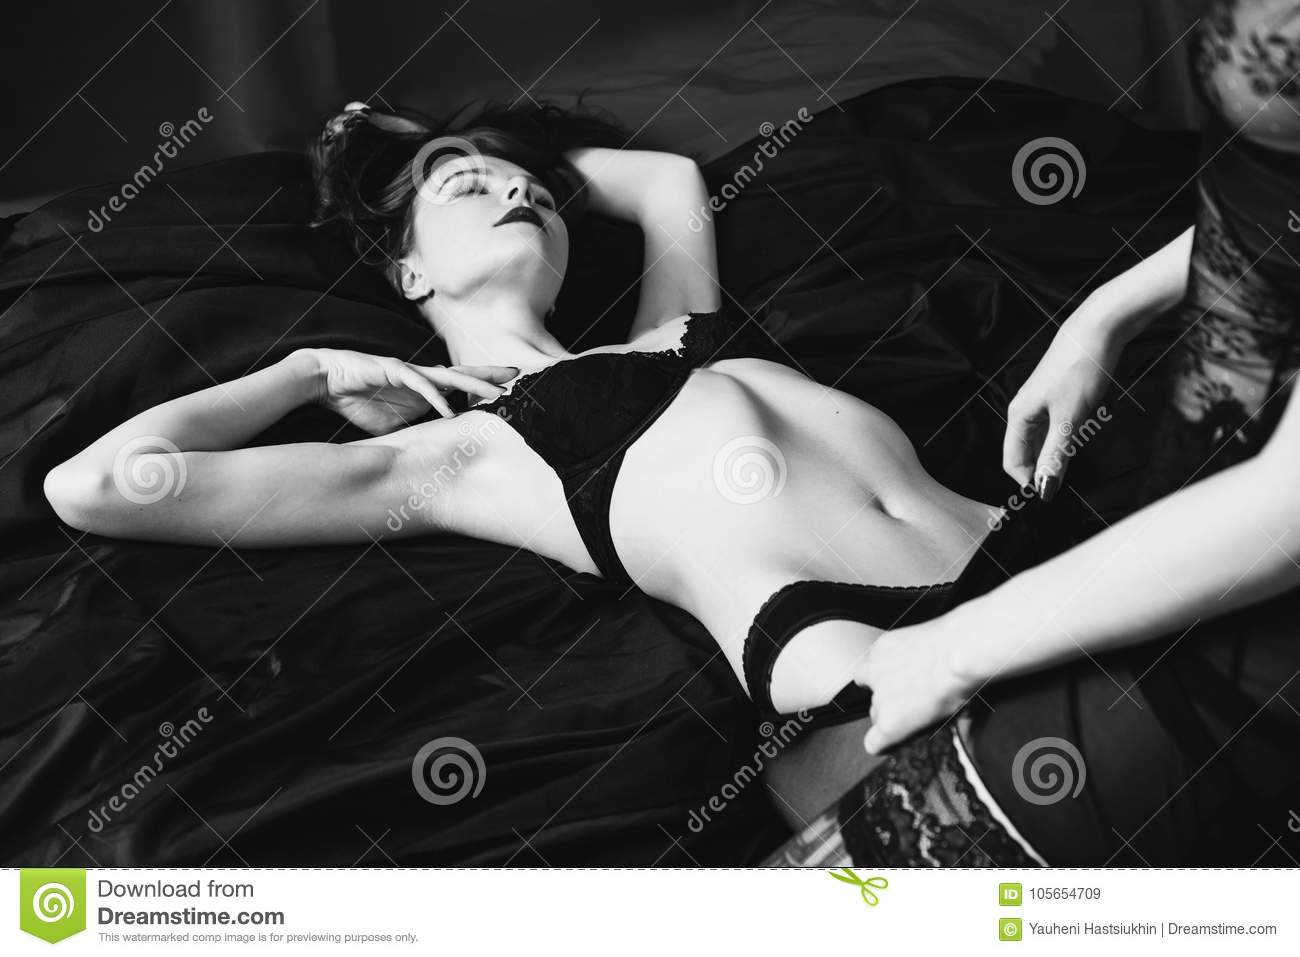 Black and white erotic photography lesbian